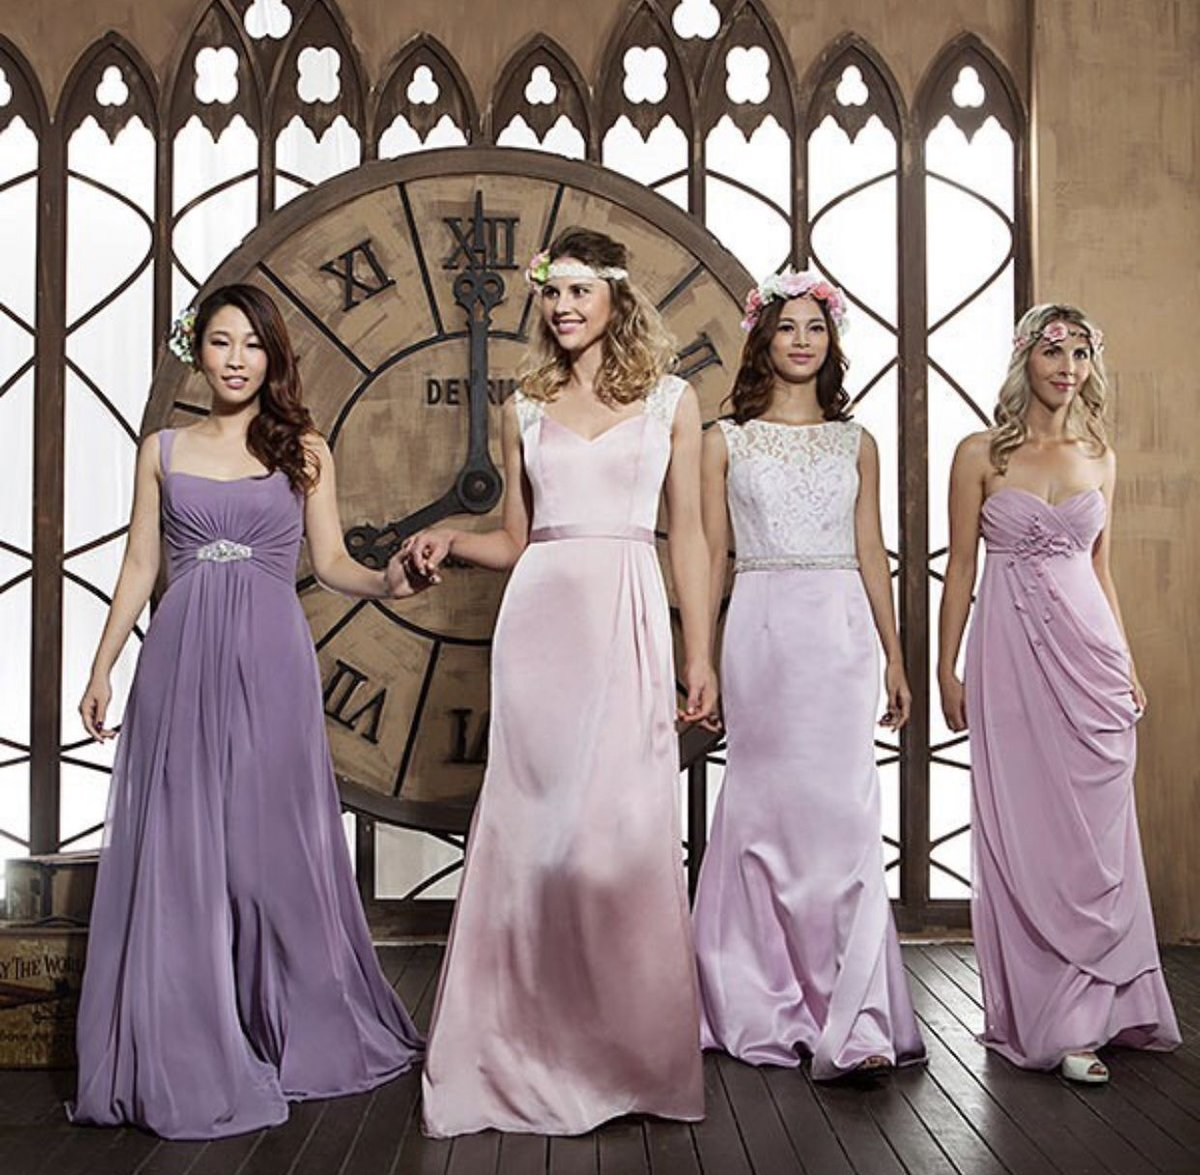 💫💫💫NEW IN, 💫💫💫 Fabulous range of bridesmaids from @angelb prices starting at £179 with sizes up to a 30 and over 35 different colours. Boo your bridesmaids appointment to come and try the different style on asap. Delivery around 8 weeks. #bridesmaids #bridetribe #wedding